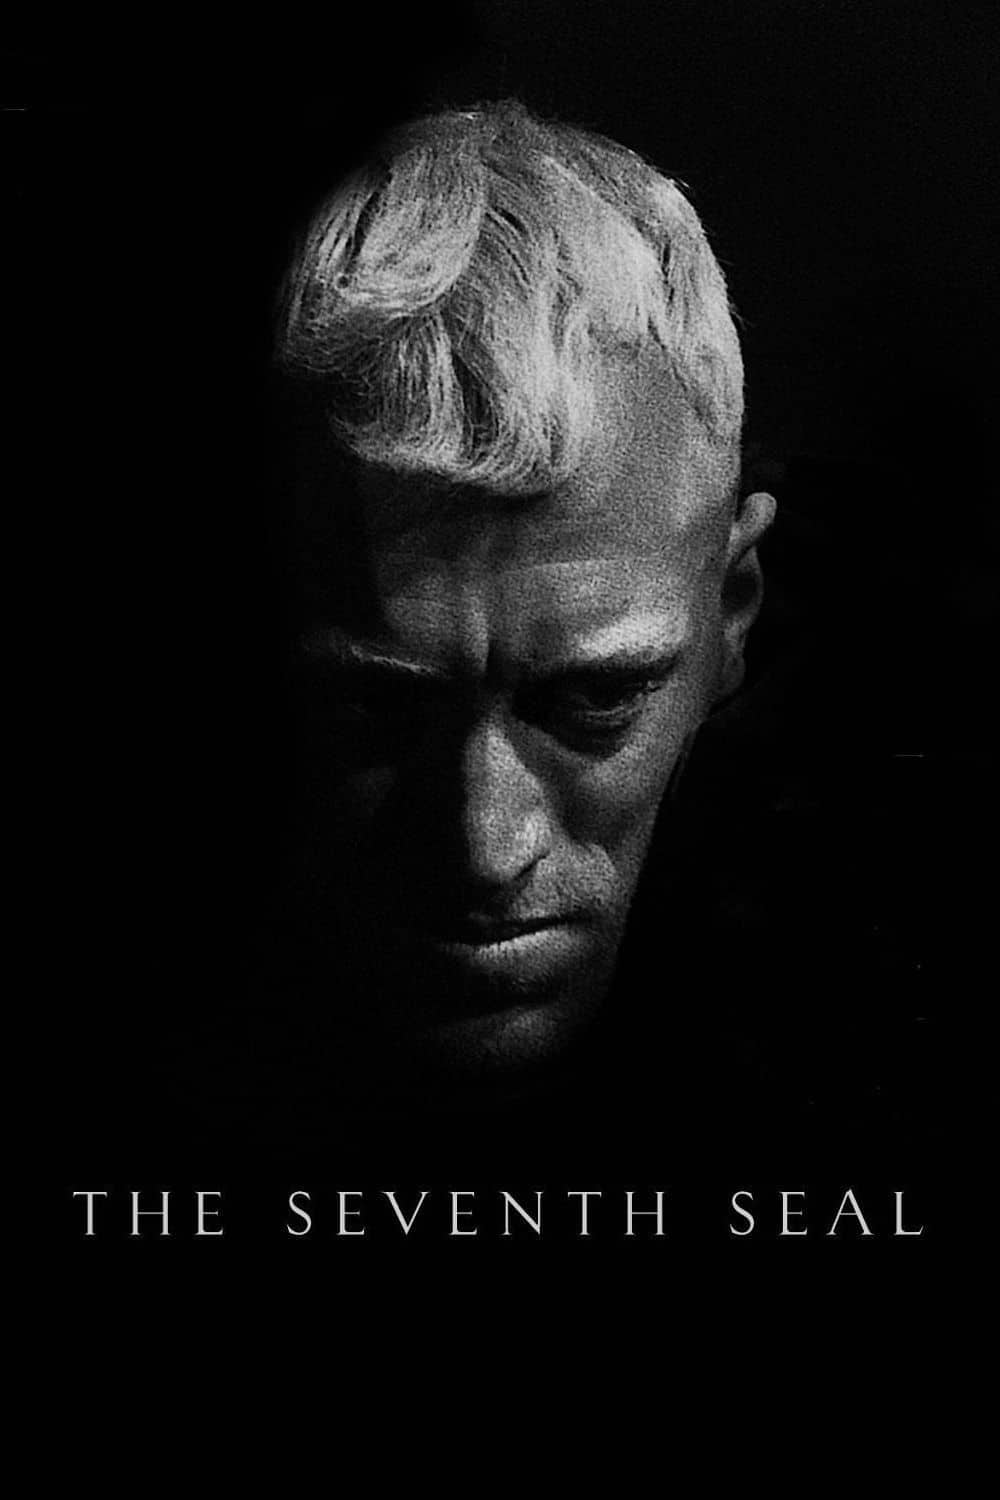 The Seventh Seal,1957